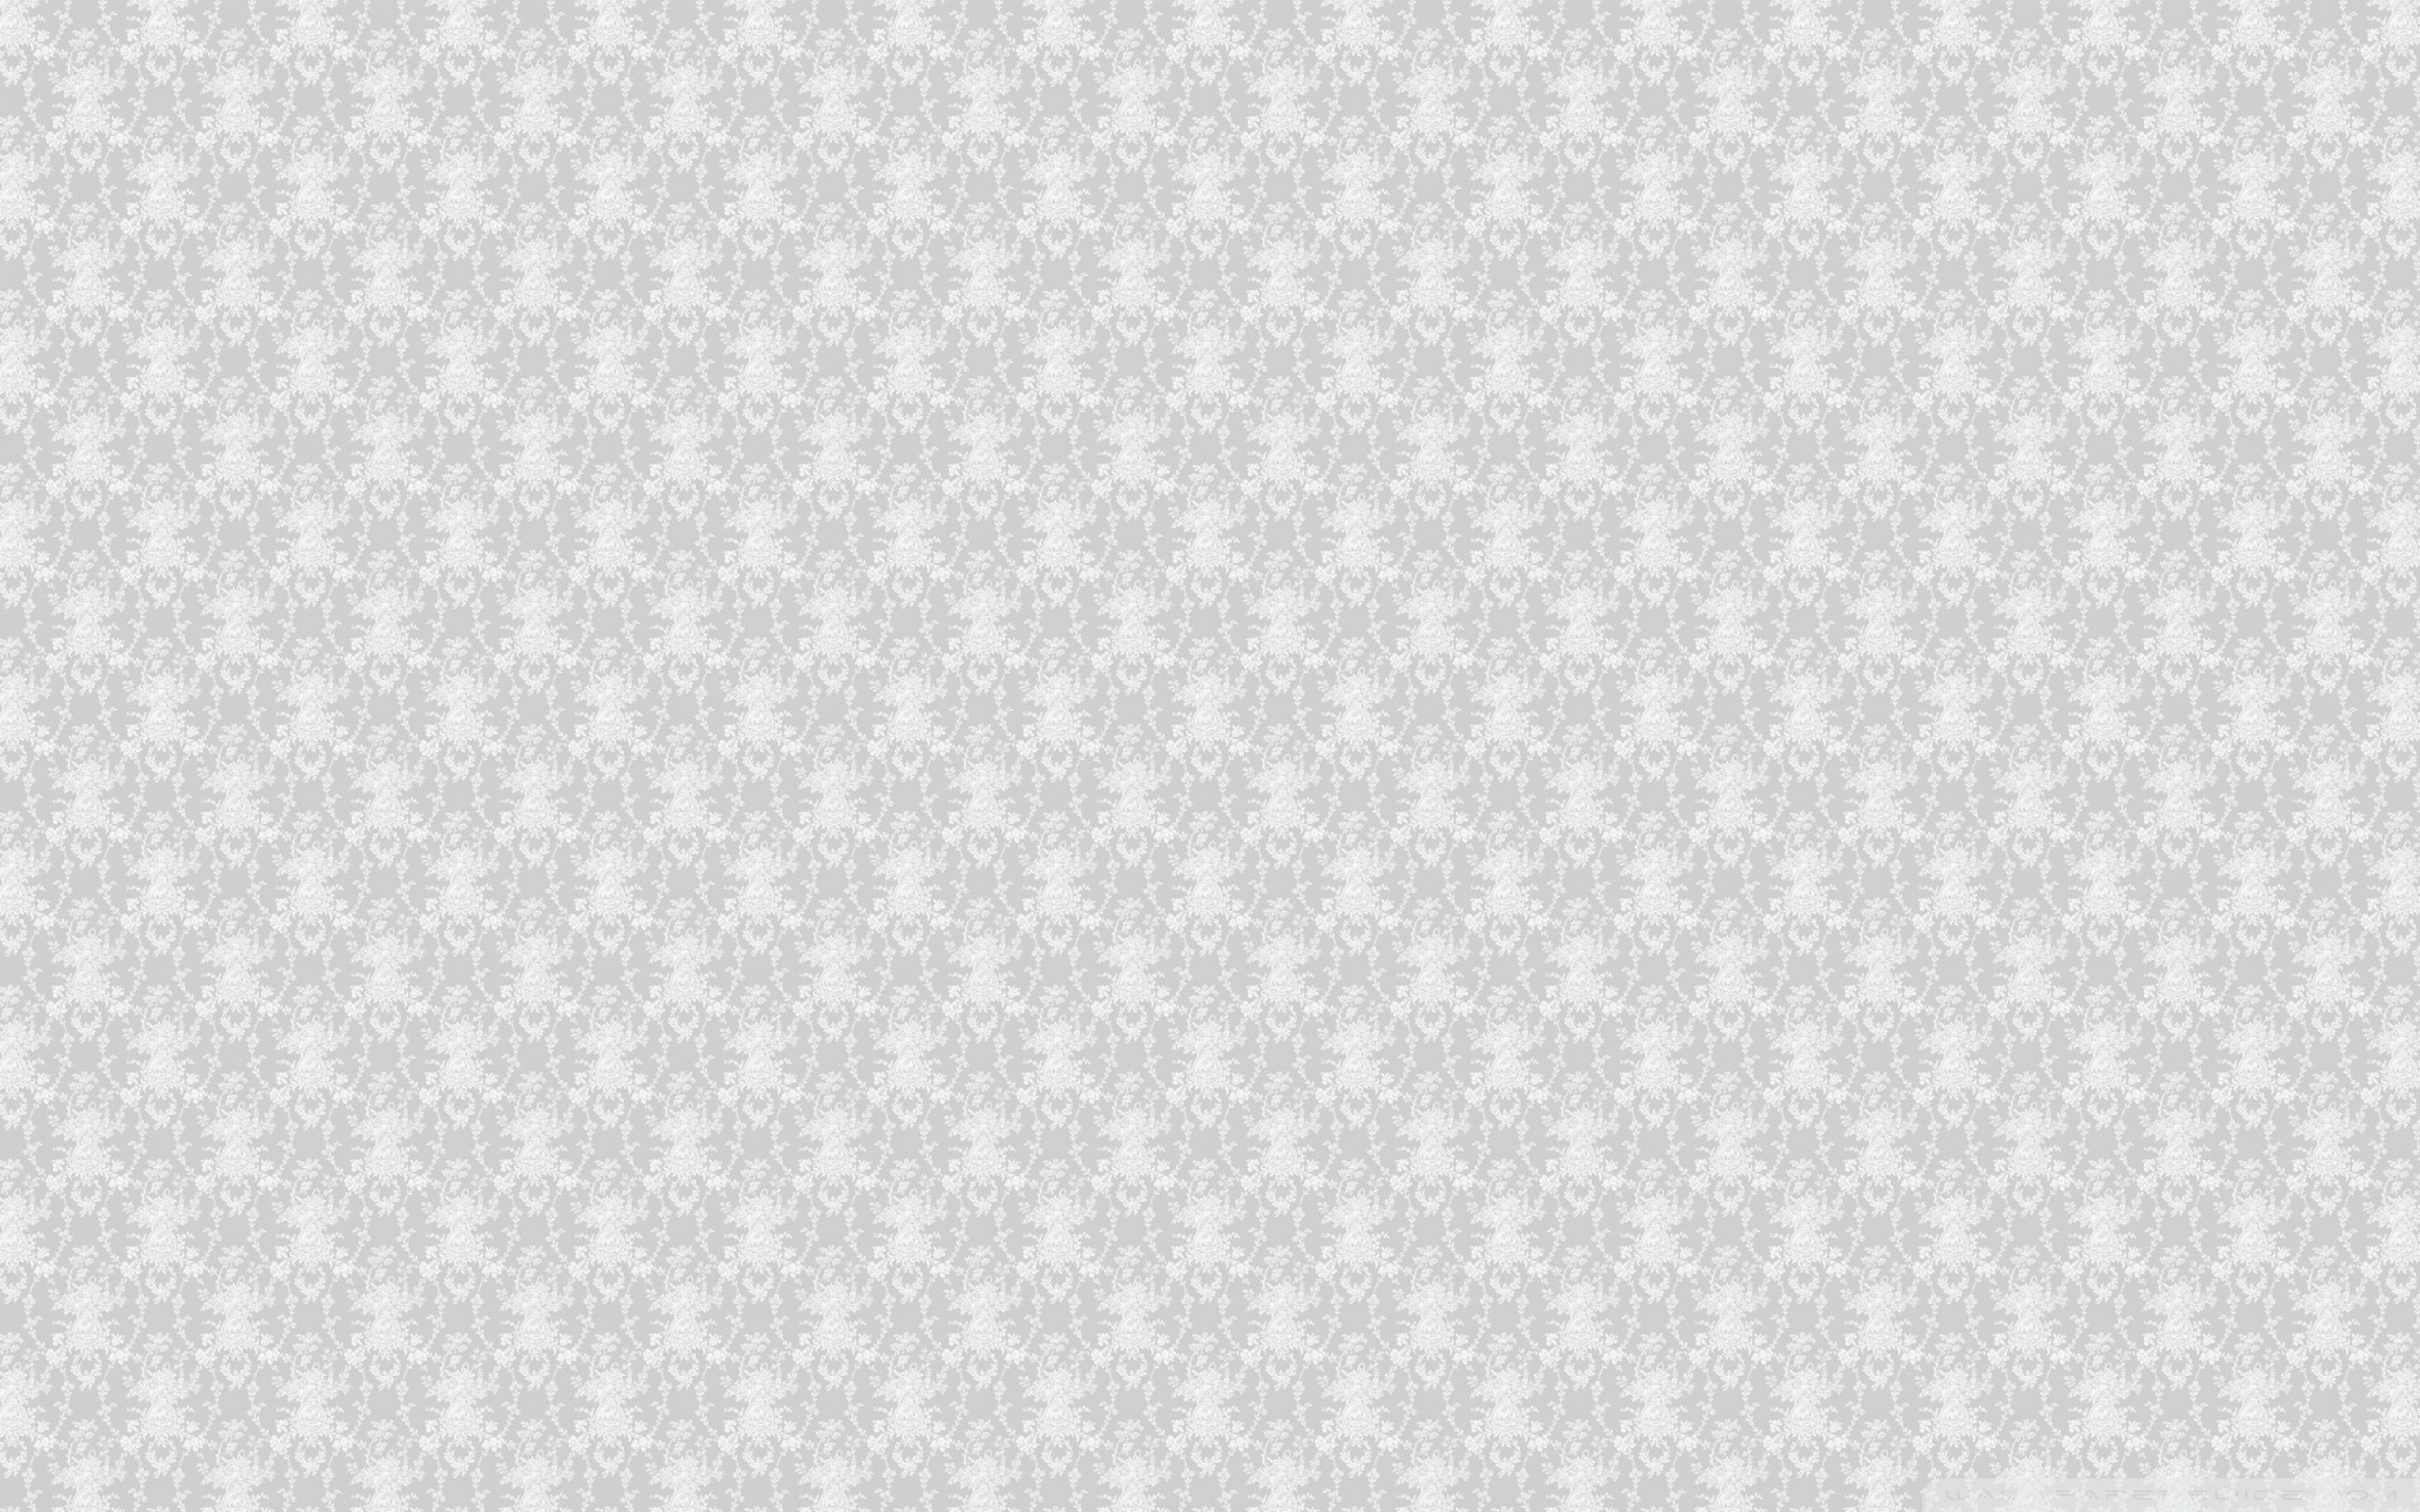 56 Pattern HD Wallpapers